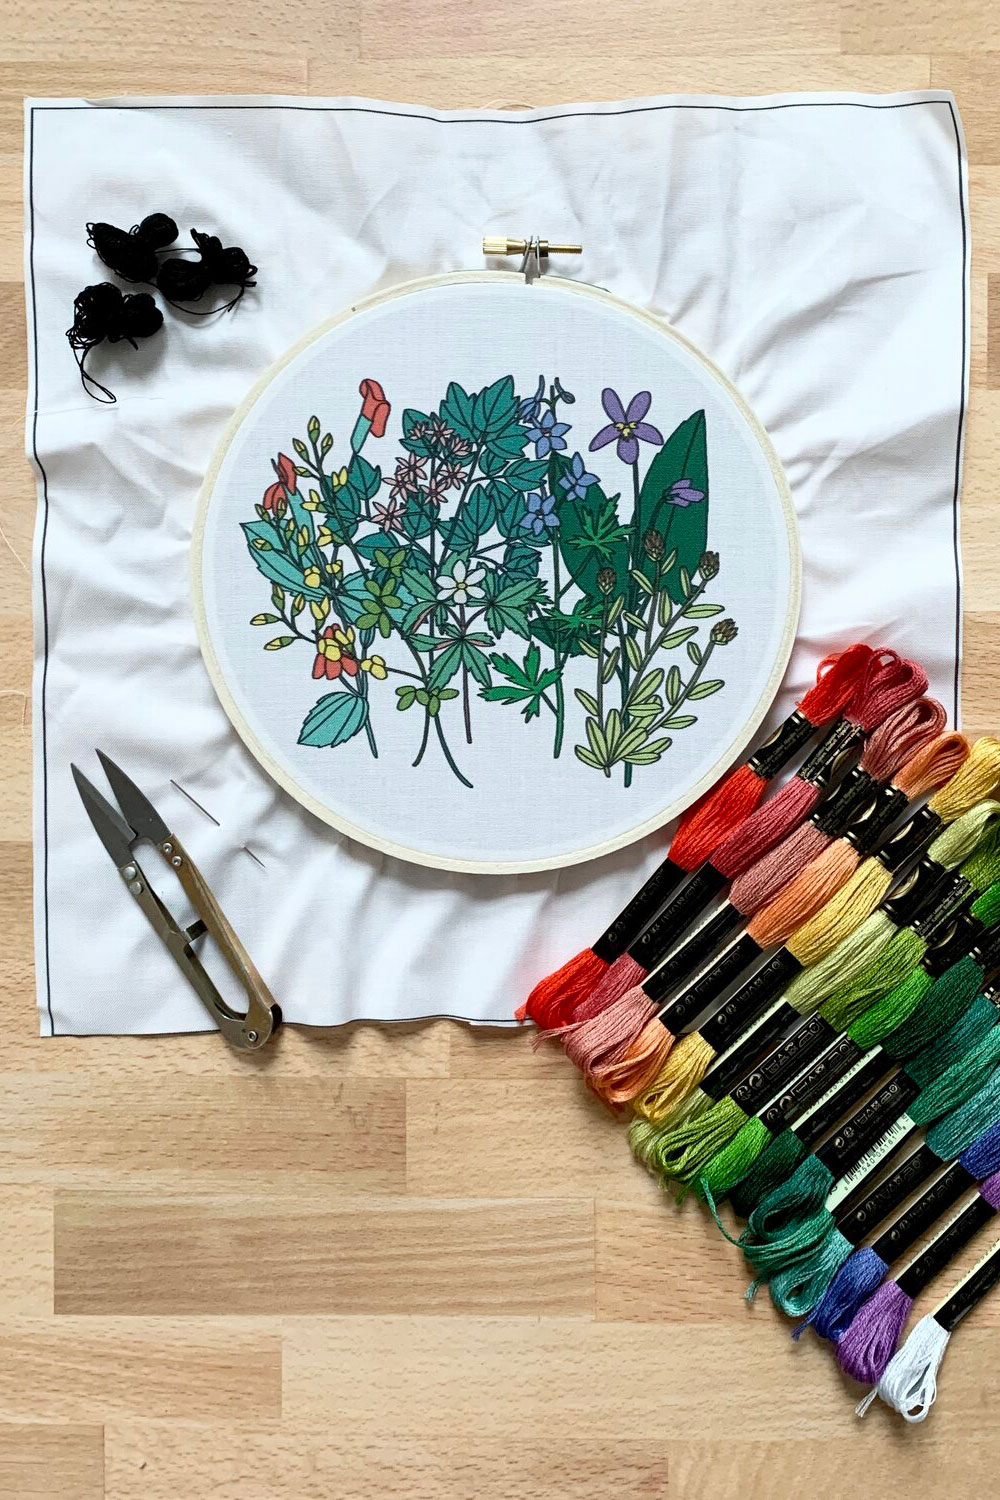 ADVANCED WILDFLOWERS D.I.Y. EMBROIDERY KIT